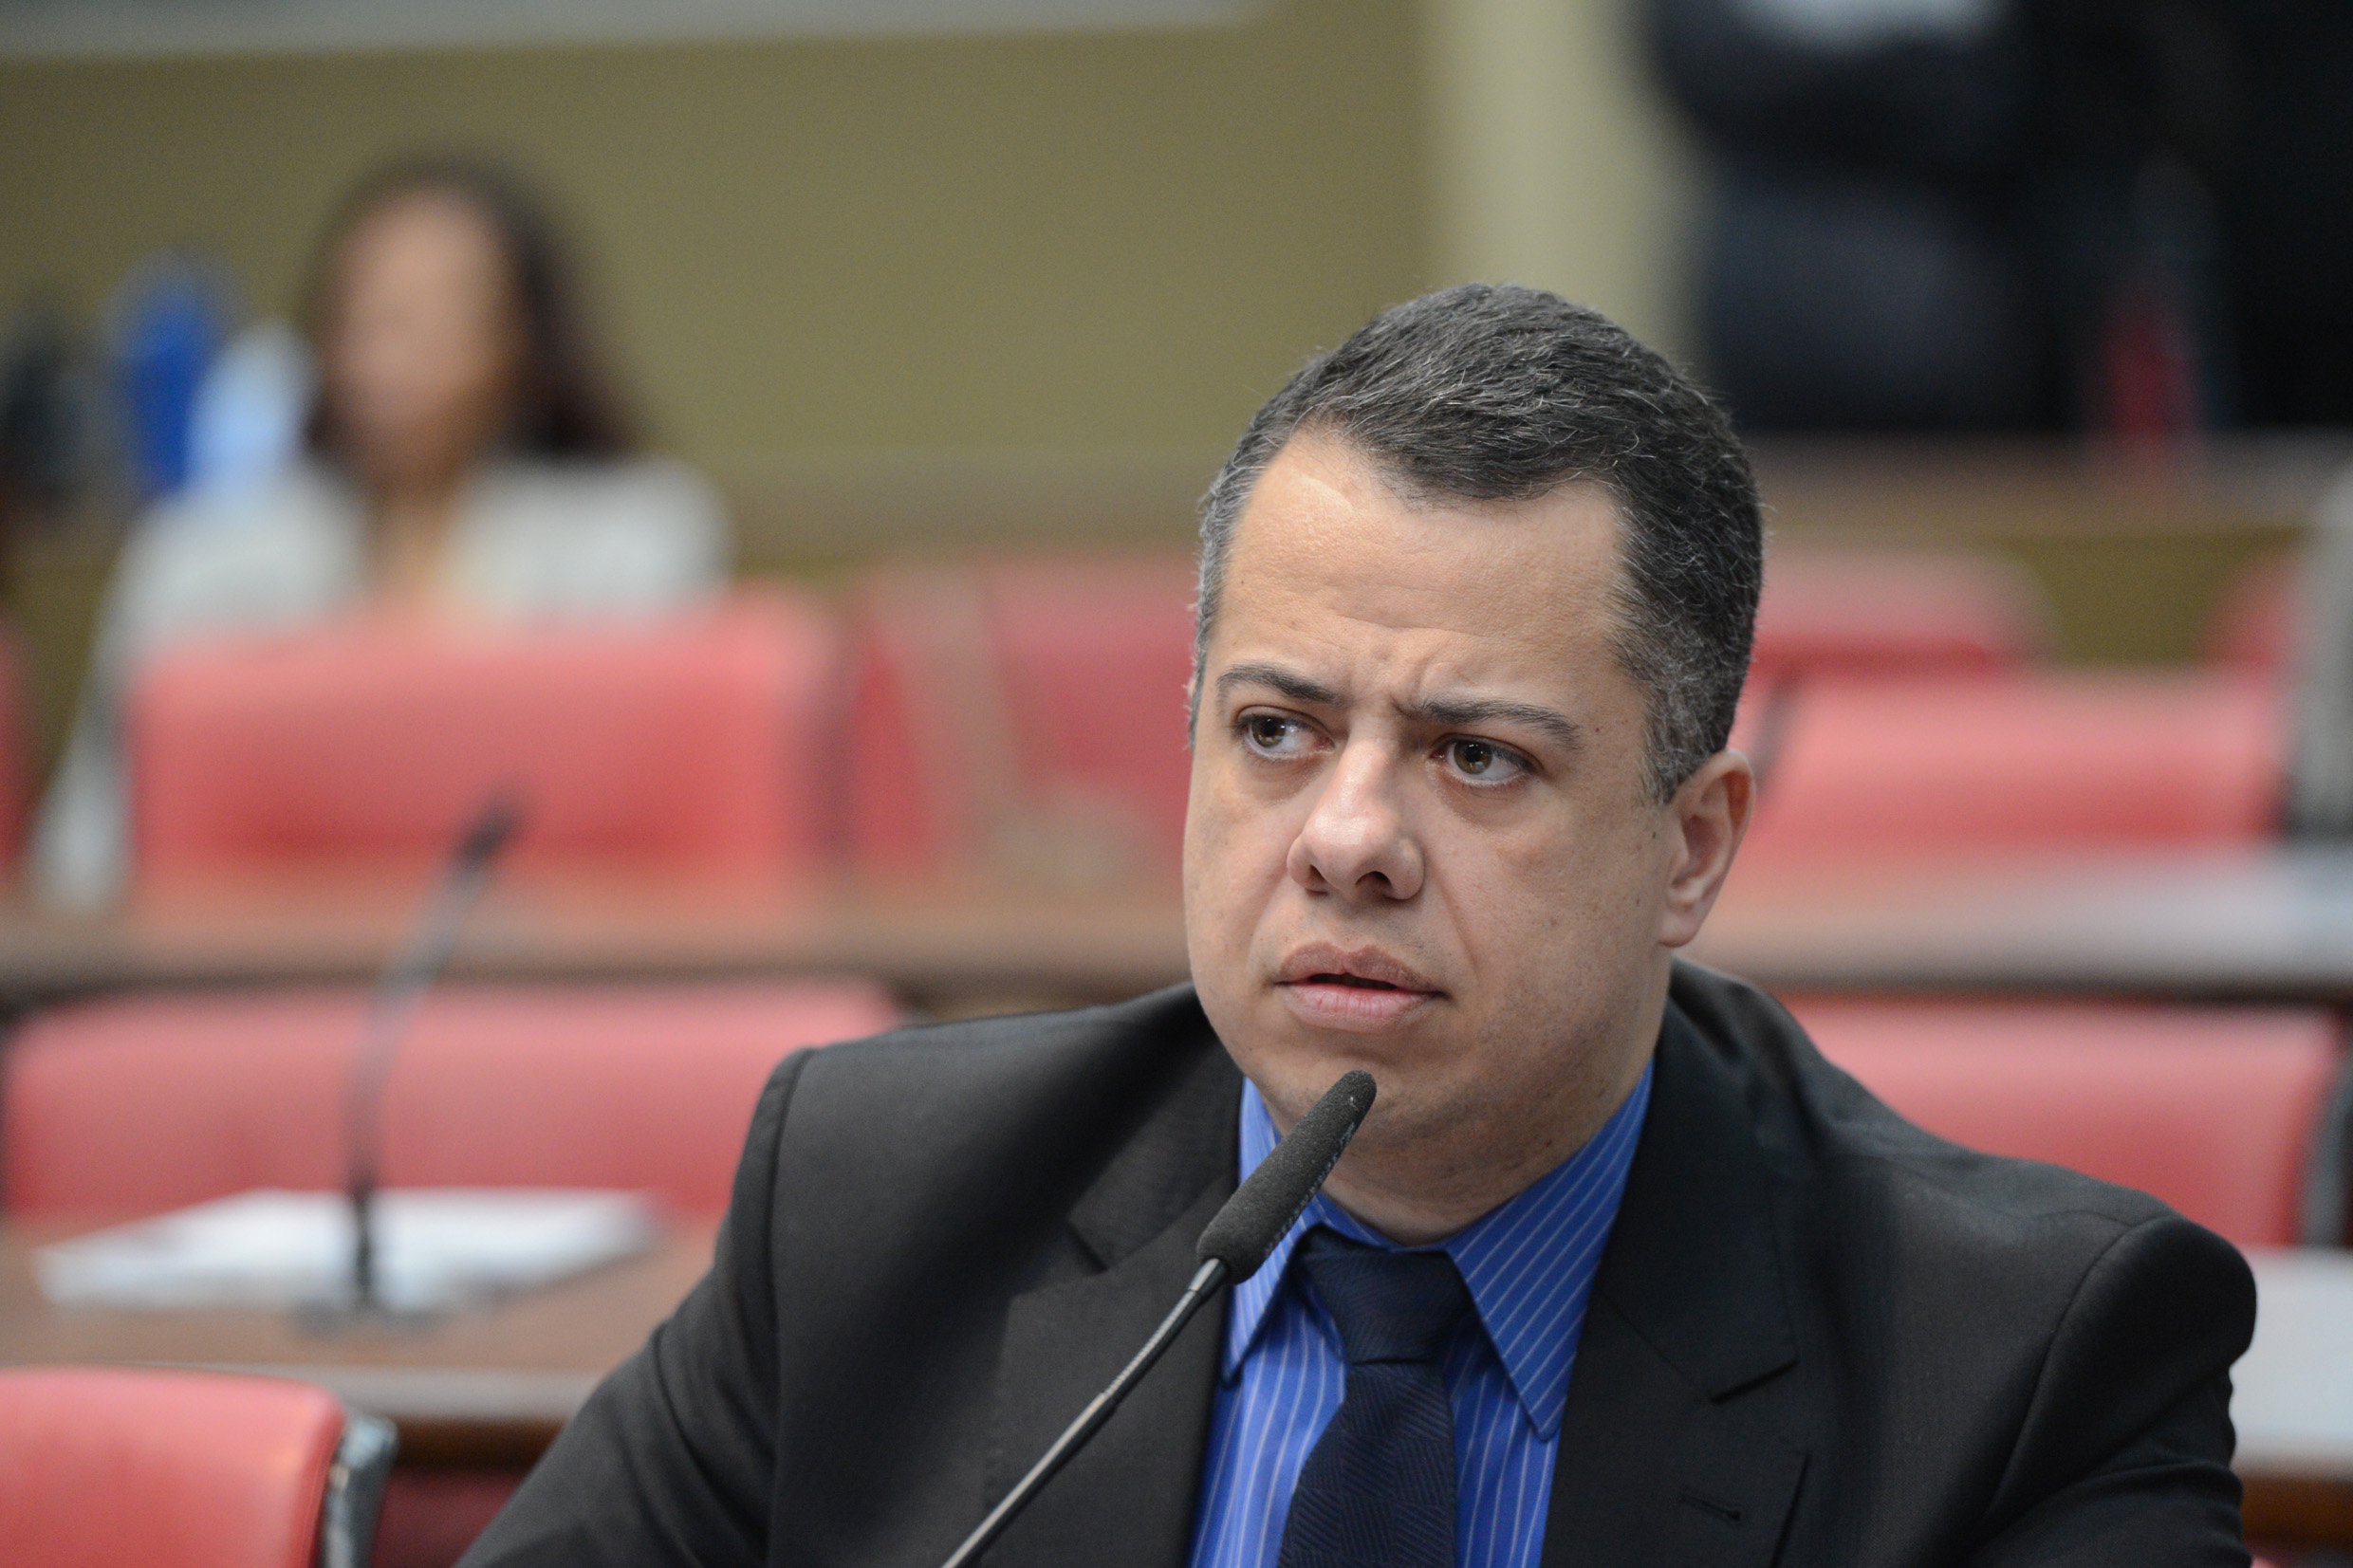 Wellington Moura <a style='float:right' href='https://www3.al.sp.gov.br/repositorio/noticia/N-06-2016/fg192200.jpg' target=_blank><img src='/_img/material-file-download-white.png' width='14px' alt='Clique para baixar a imagem'></a>